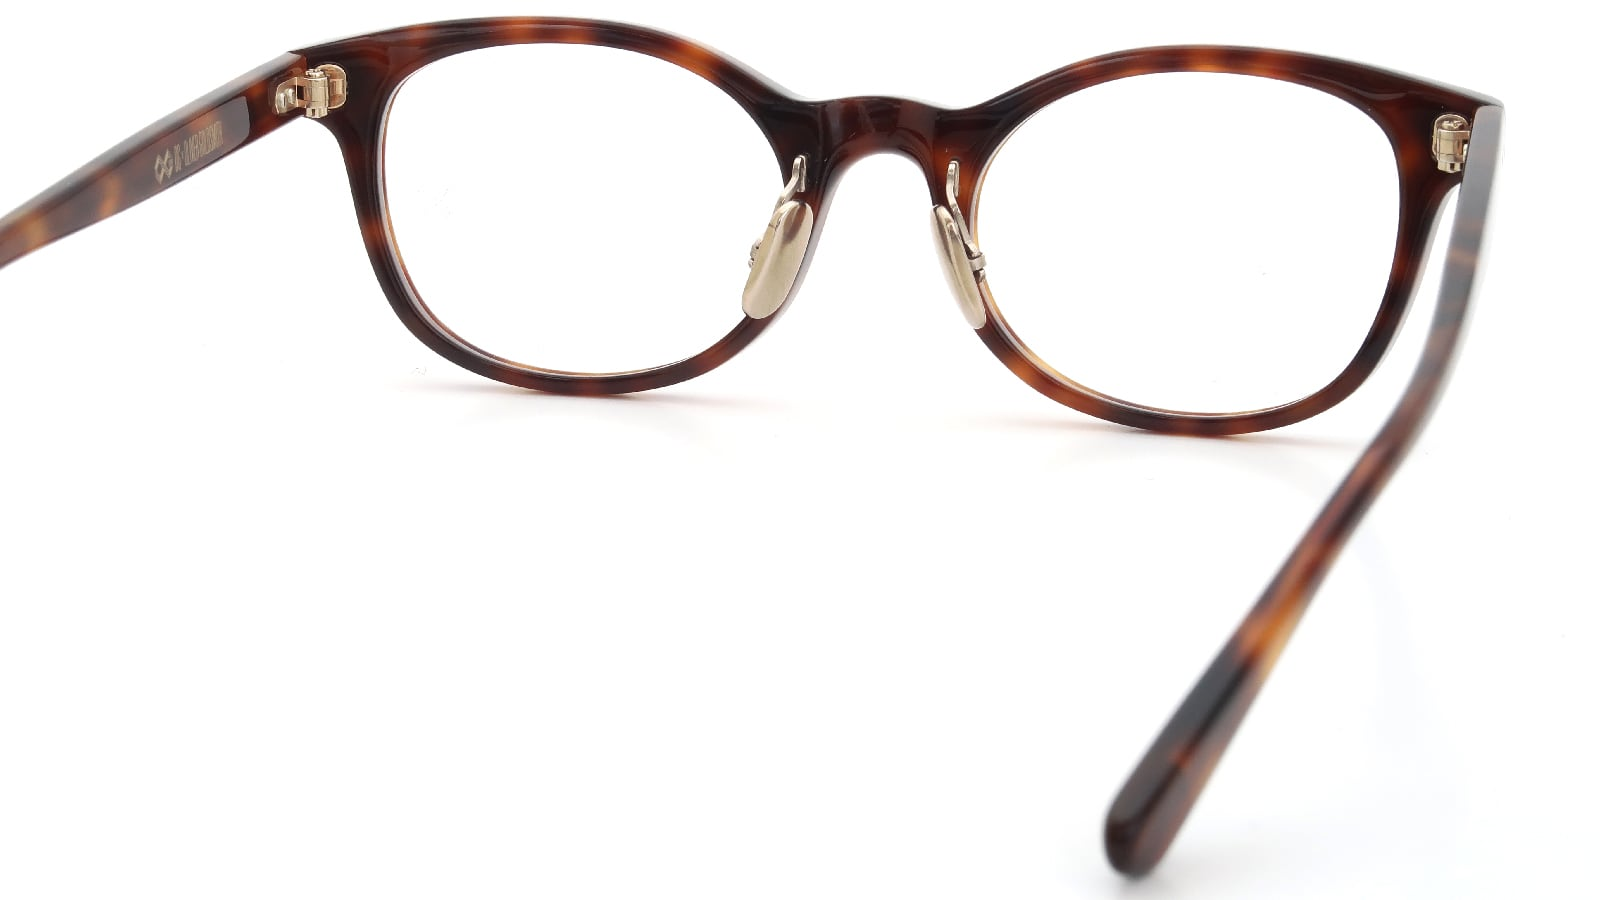 OG × OLIVER GOLDSMITH PUT IN two 49 7